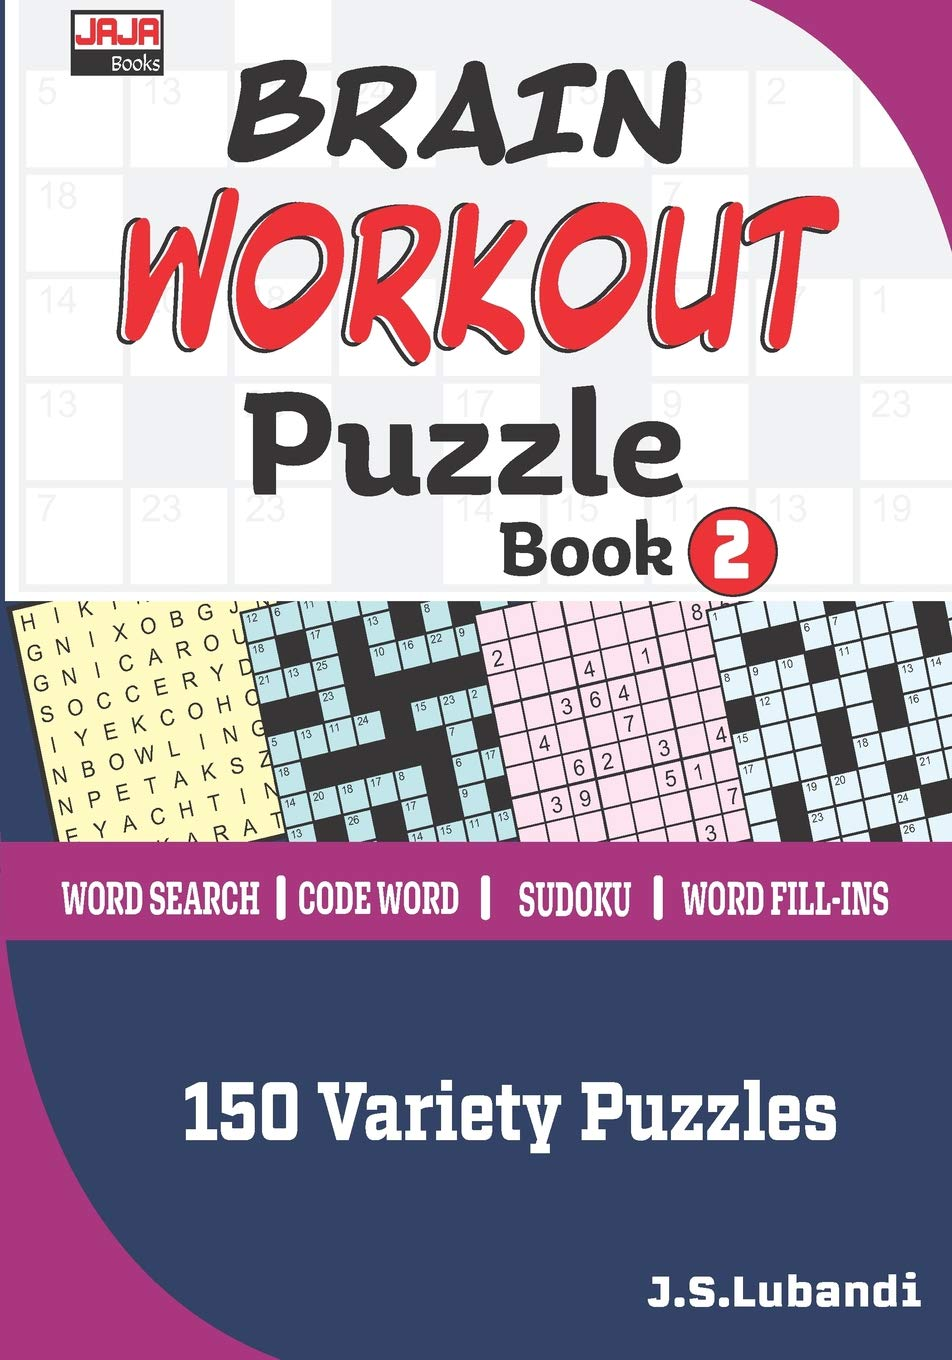 BRAIN WORKOUT Puzzle Book 2 (150 Variety puzzles: Word